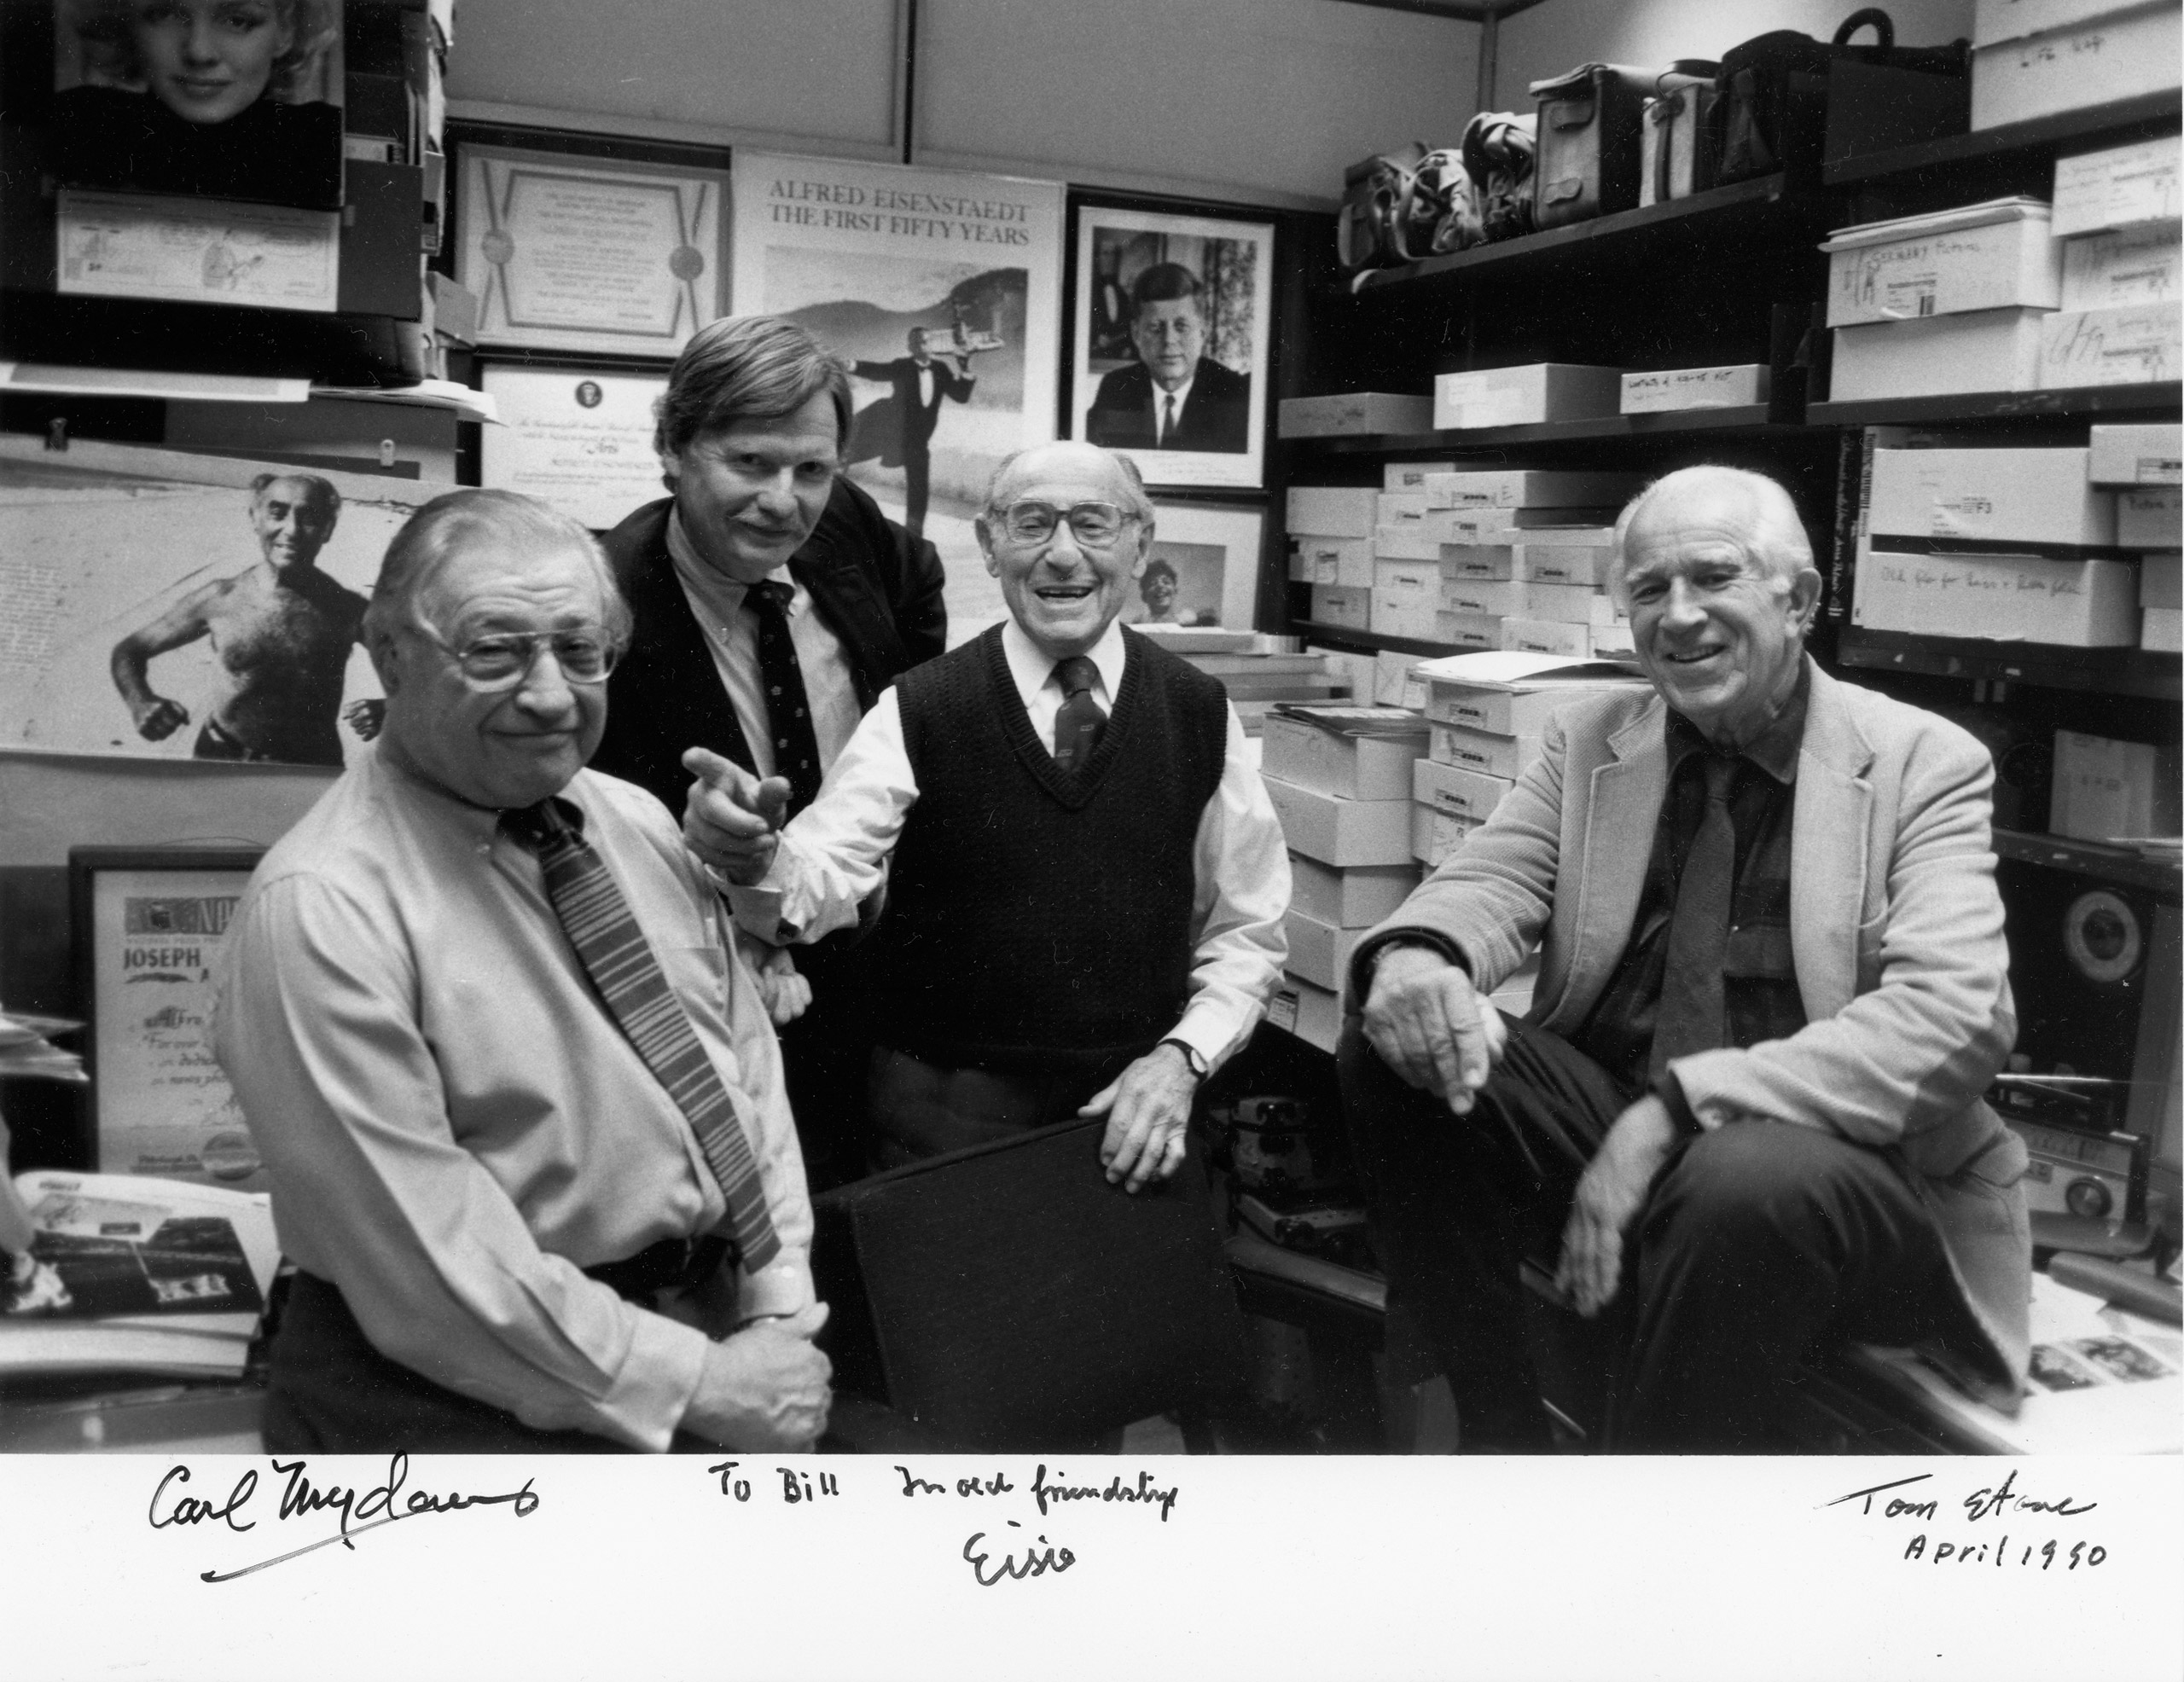 LIFE photographers (l-r) Carl Mydans, Bill Ray, Alfred Eisensteadt and David Douglas Duncan.